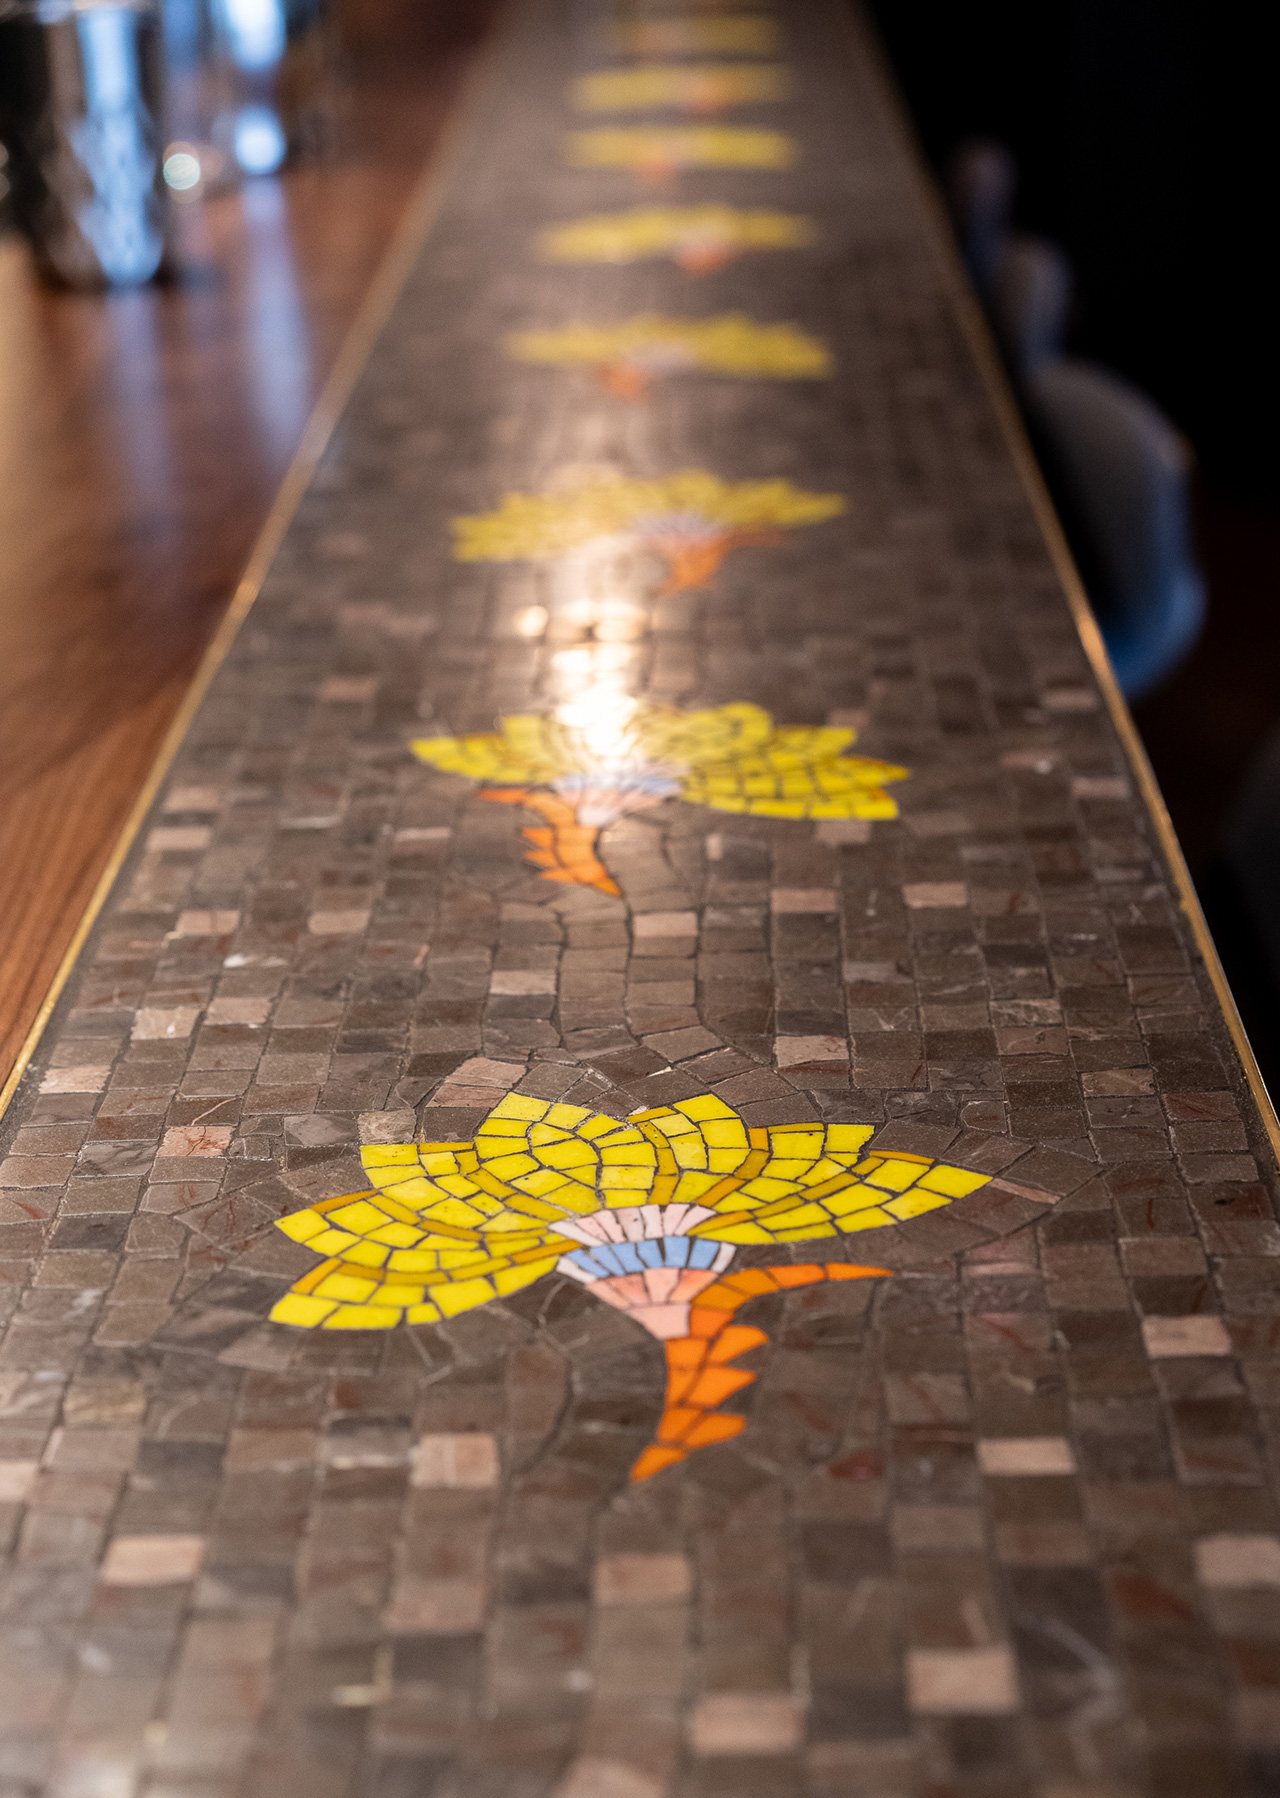 Details on the bar countertop.